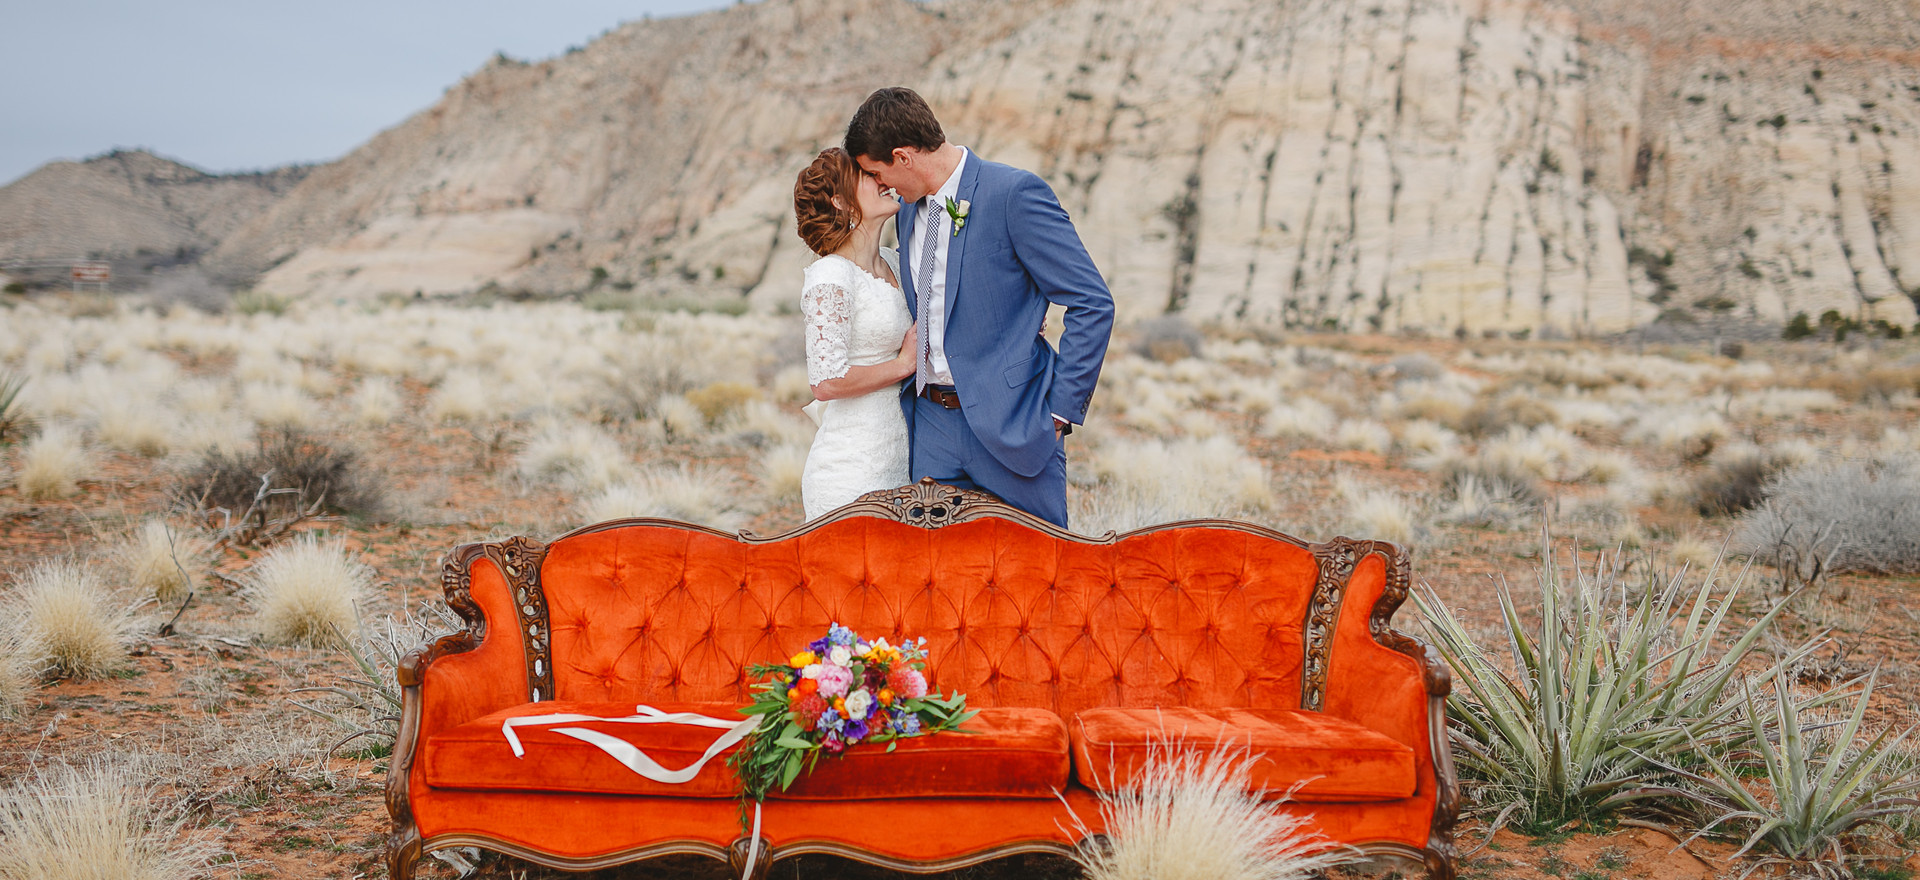 Swoon(orangeshoot)-107.jpg